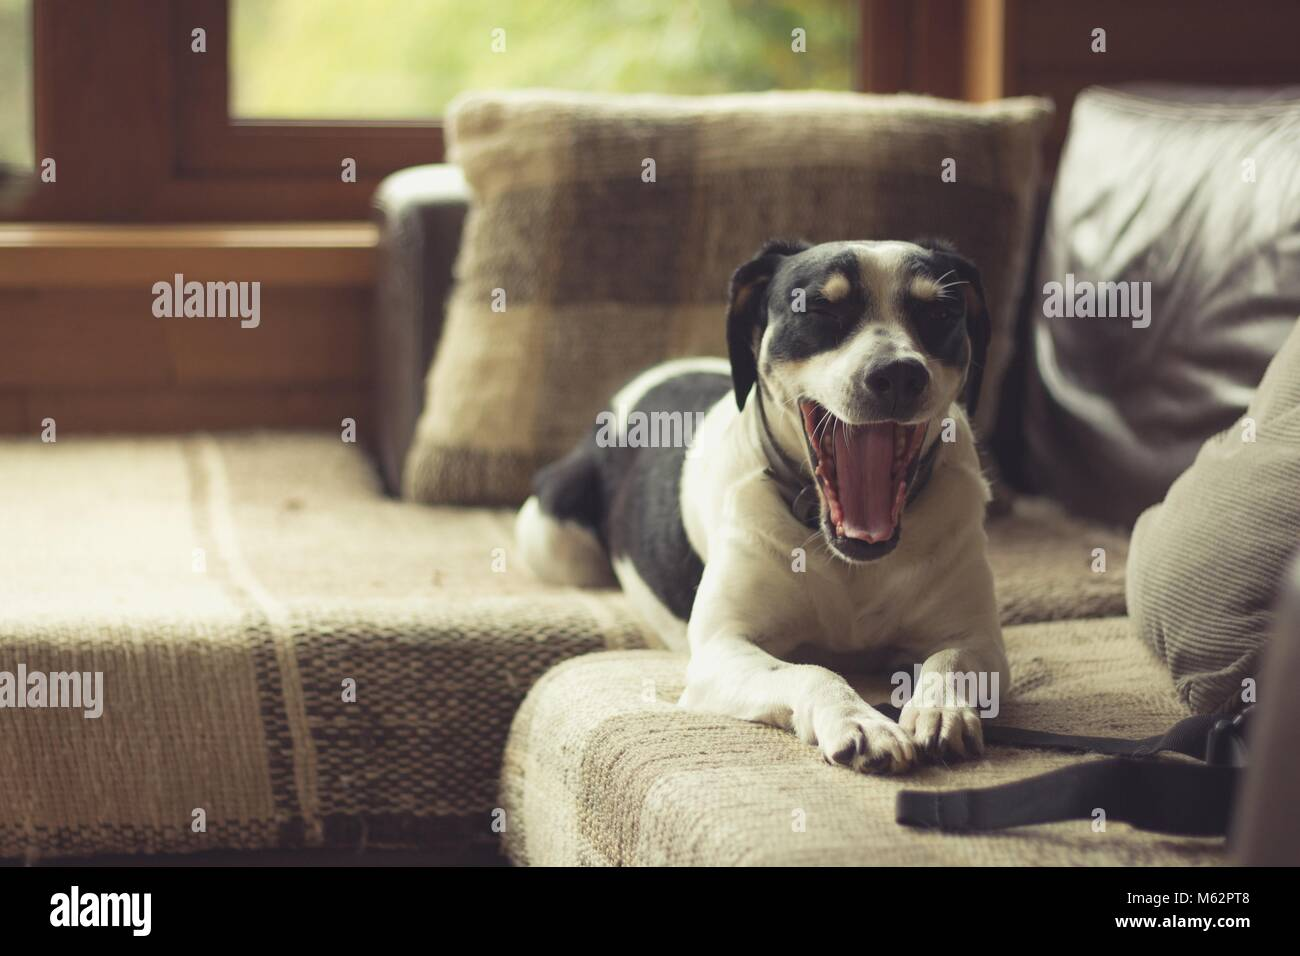 Black and white dog yawning while resting on couch by window in living room. Vintage effect. Sleepy dog taking nap - Stock Image